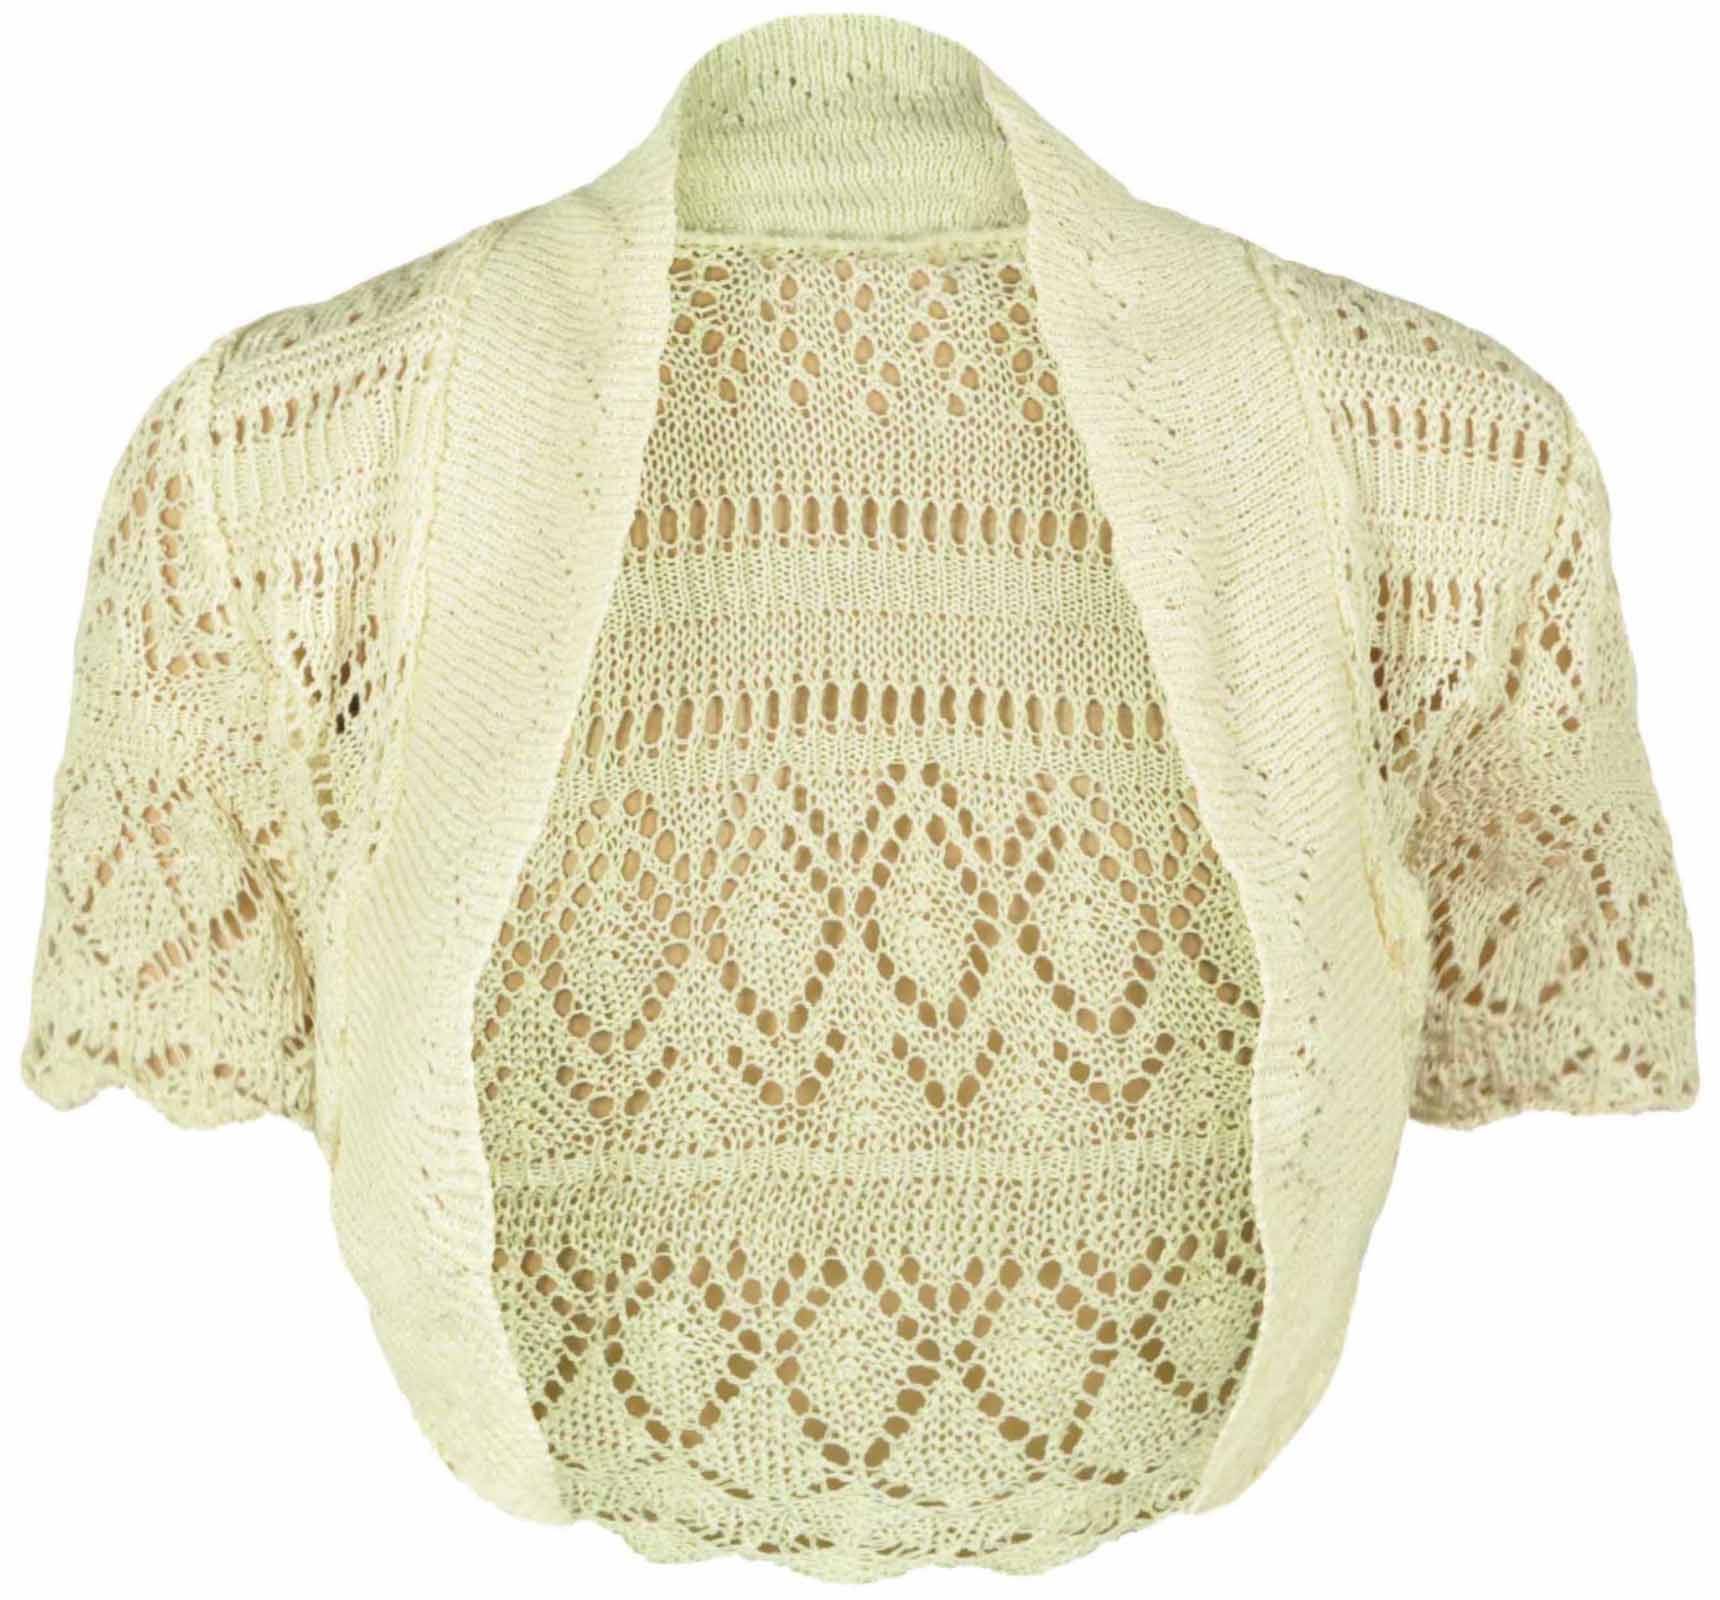 NEW LADIES KNITTED BOLERO SHRUG WOMENS TOP SIZE 8 - 14 | eBay